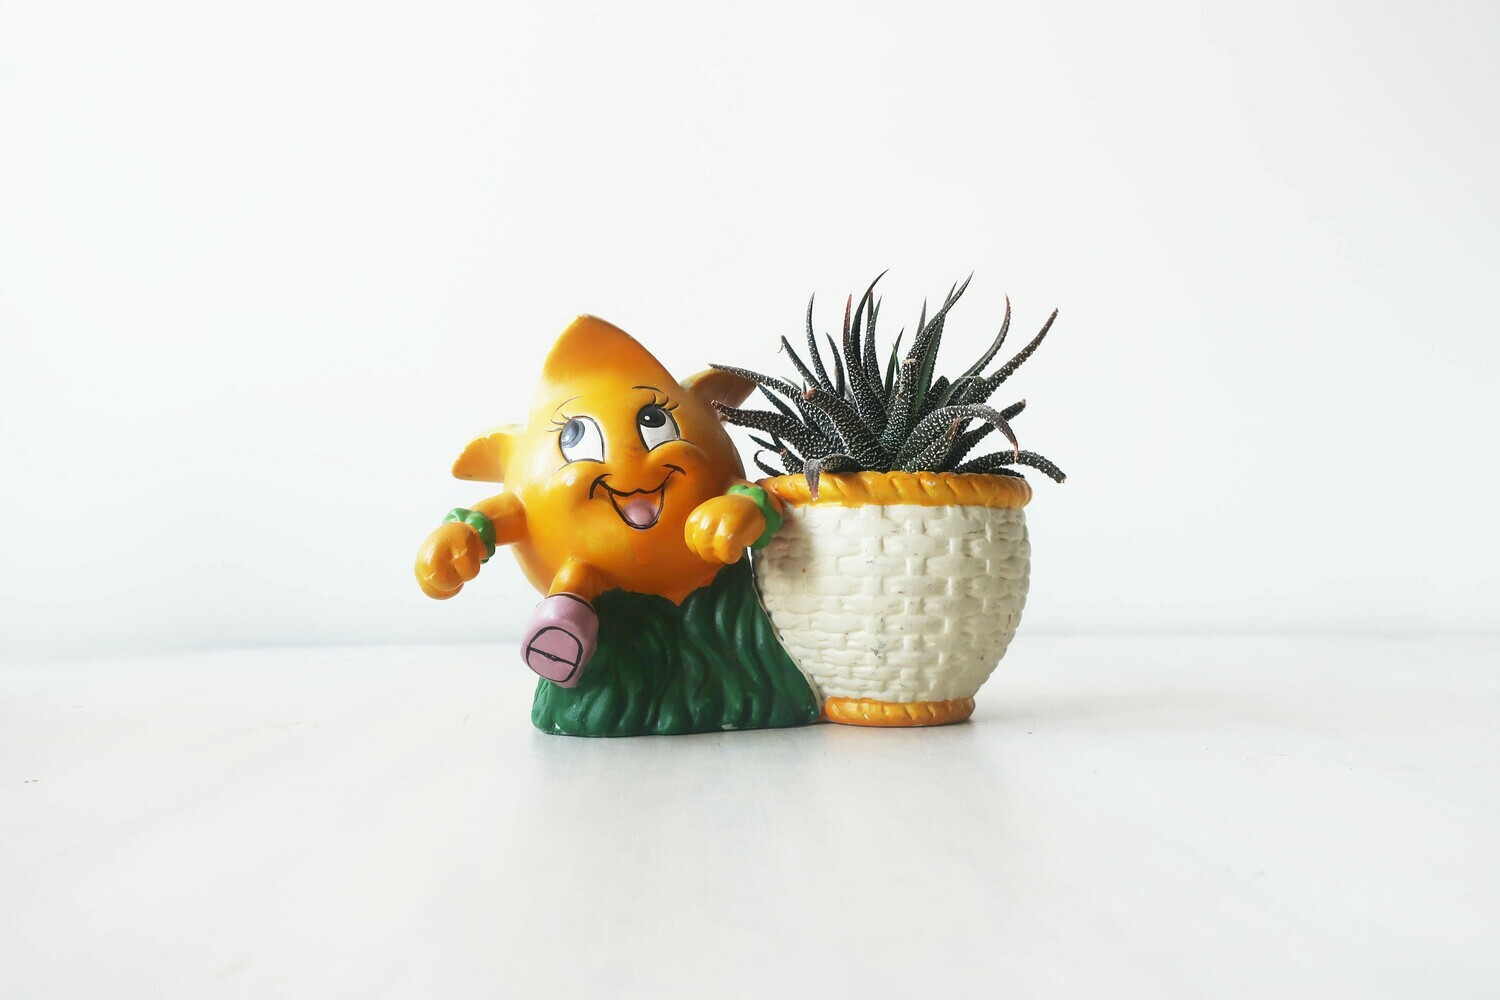 Vintage novelty sweetcorn planter